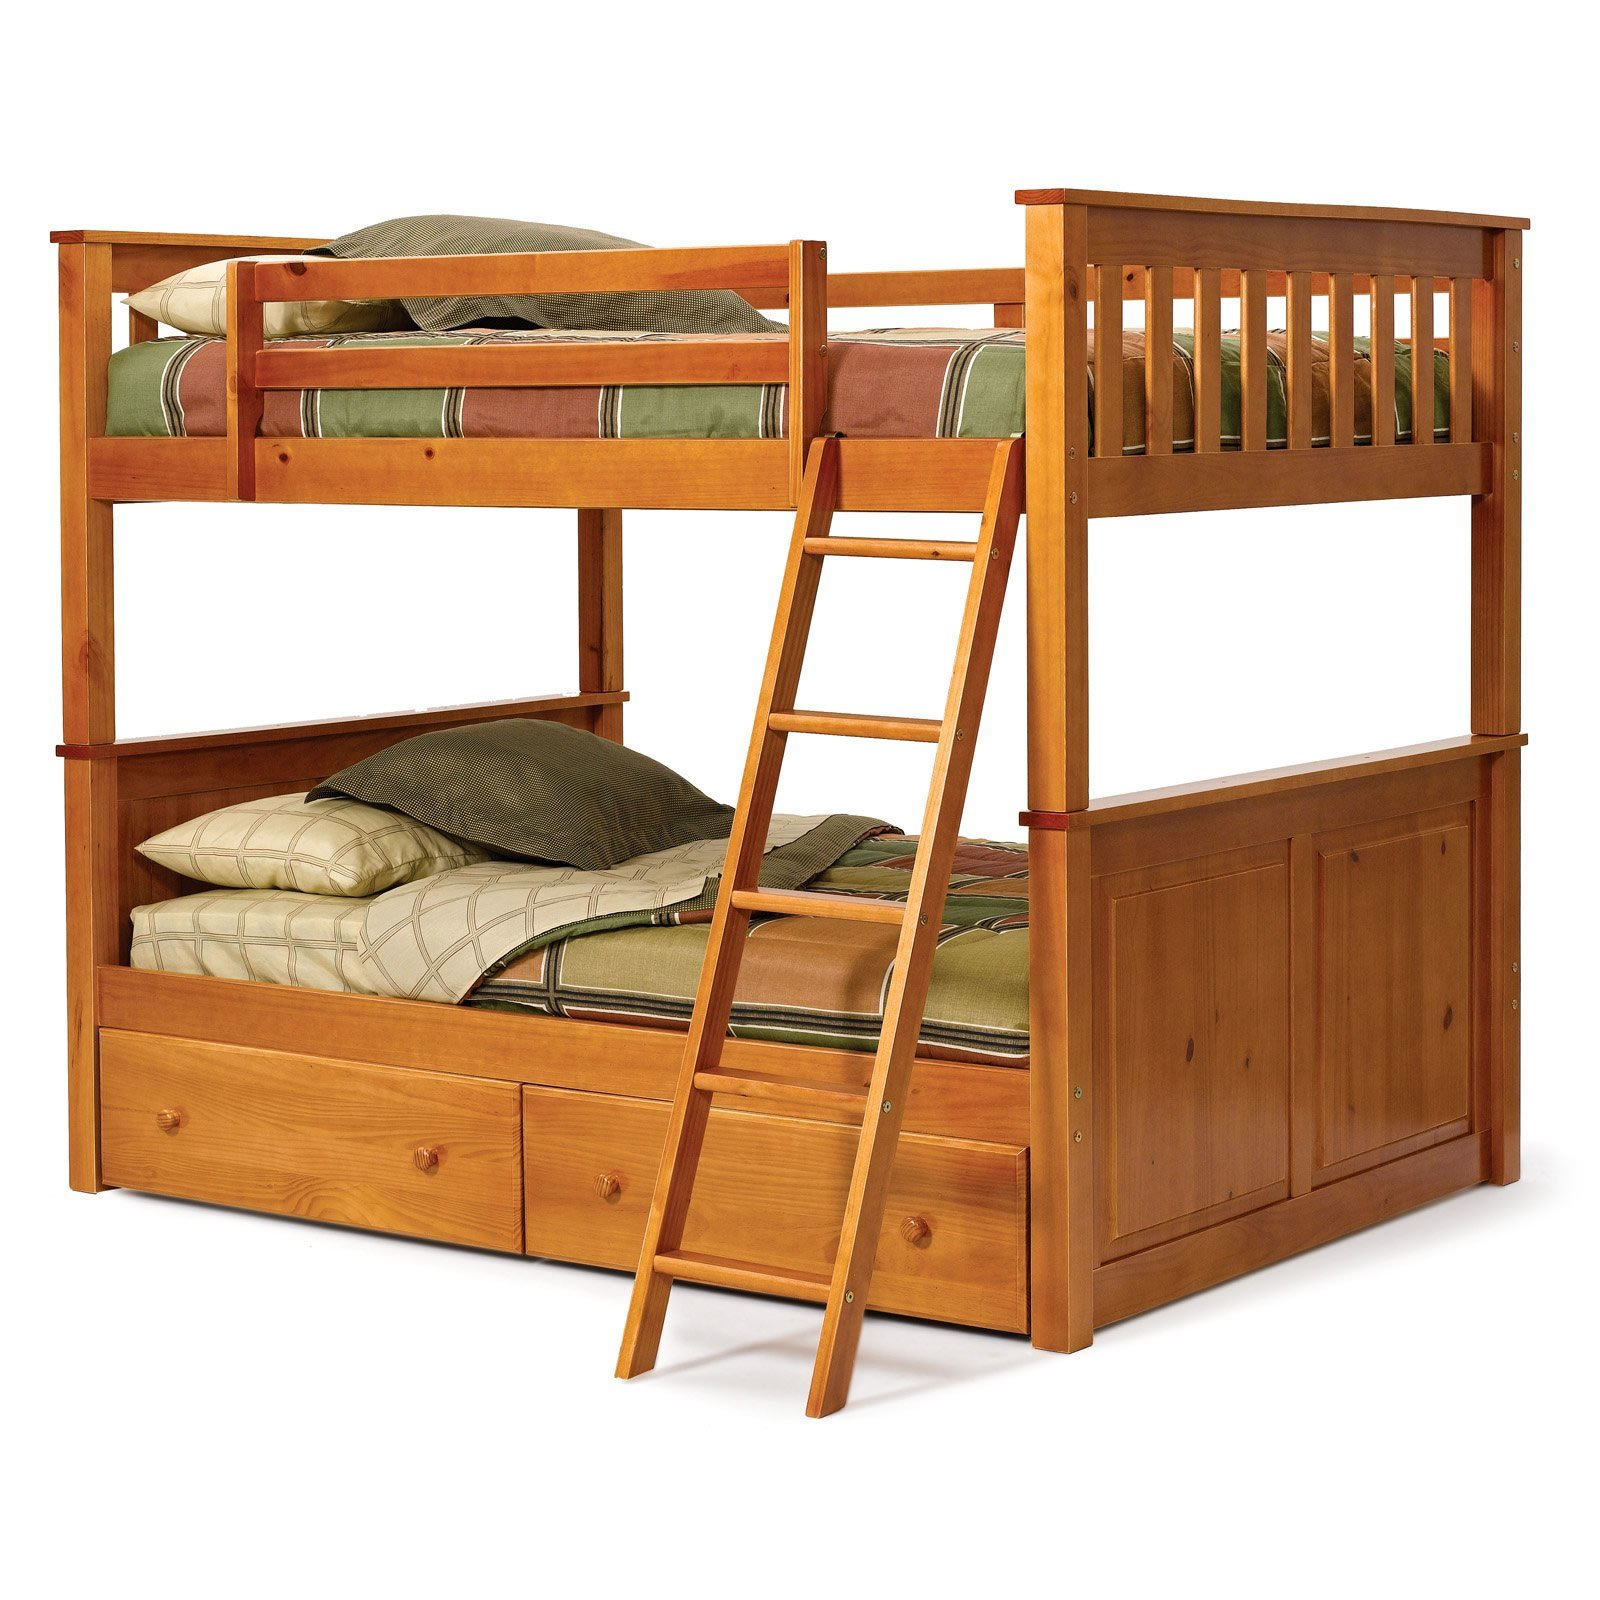 Choosing best bunk beds for your kids wikiperiment for Wooden bunkbeds